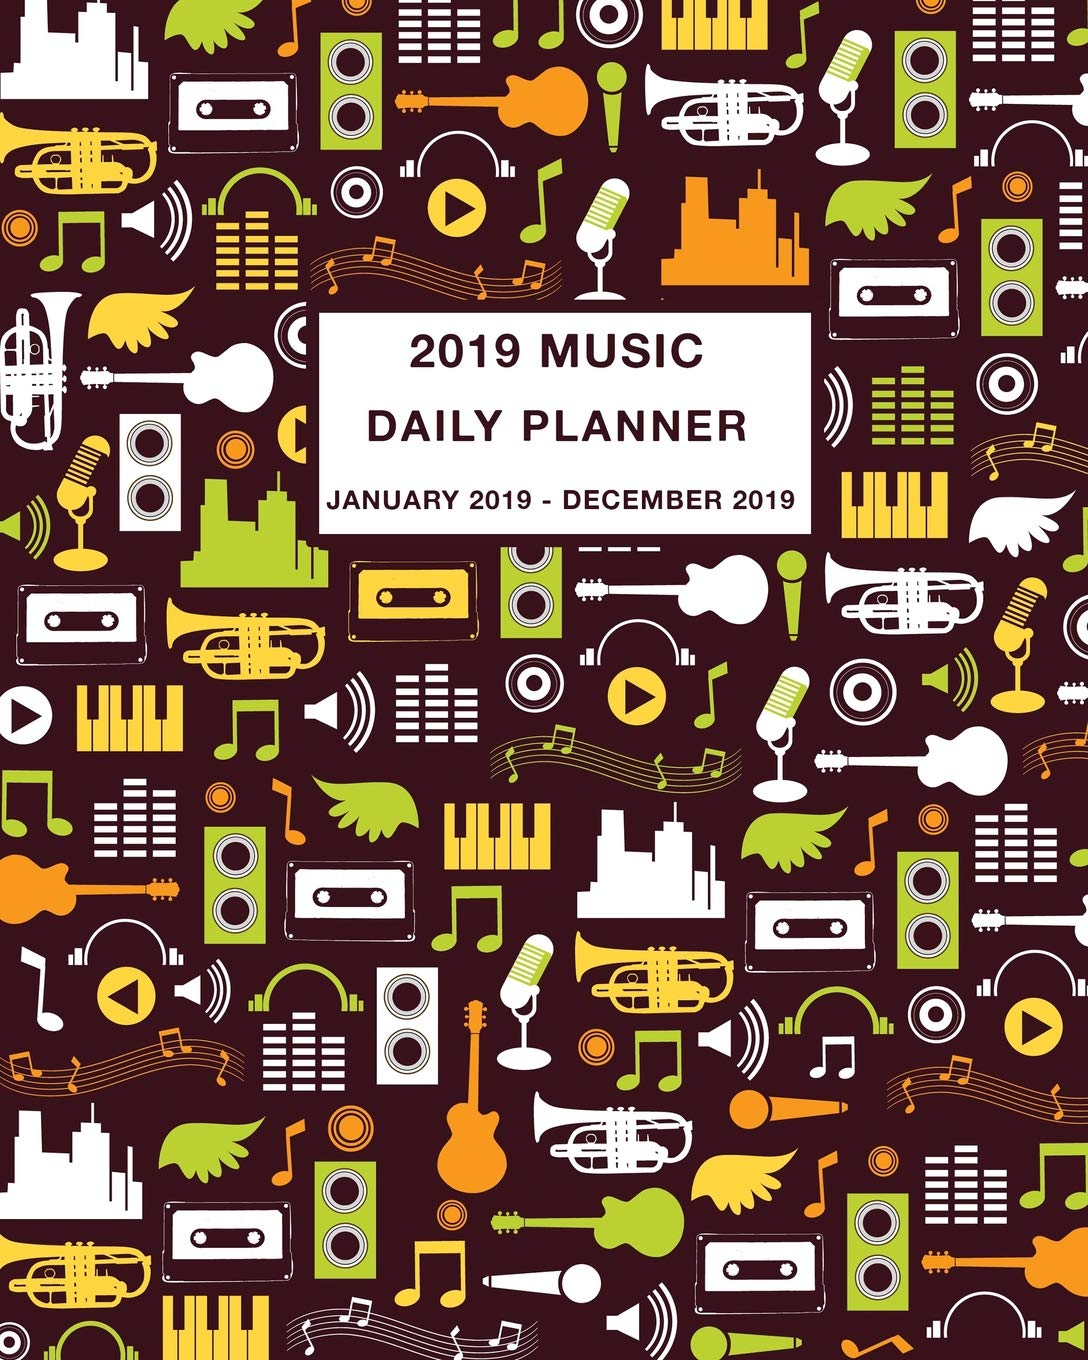 2019 Music Daily Planner: Daily, Weekly and Monthly Calendar and Planner January 2019 - December 2019 Paperback – August 3, 2018 Simple Print Press Independently published 1718032218 EDUCATION / Vocational